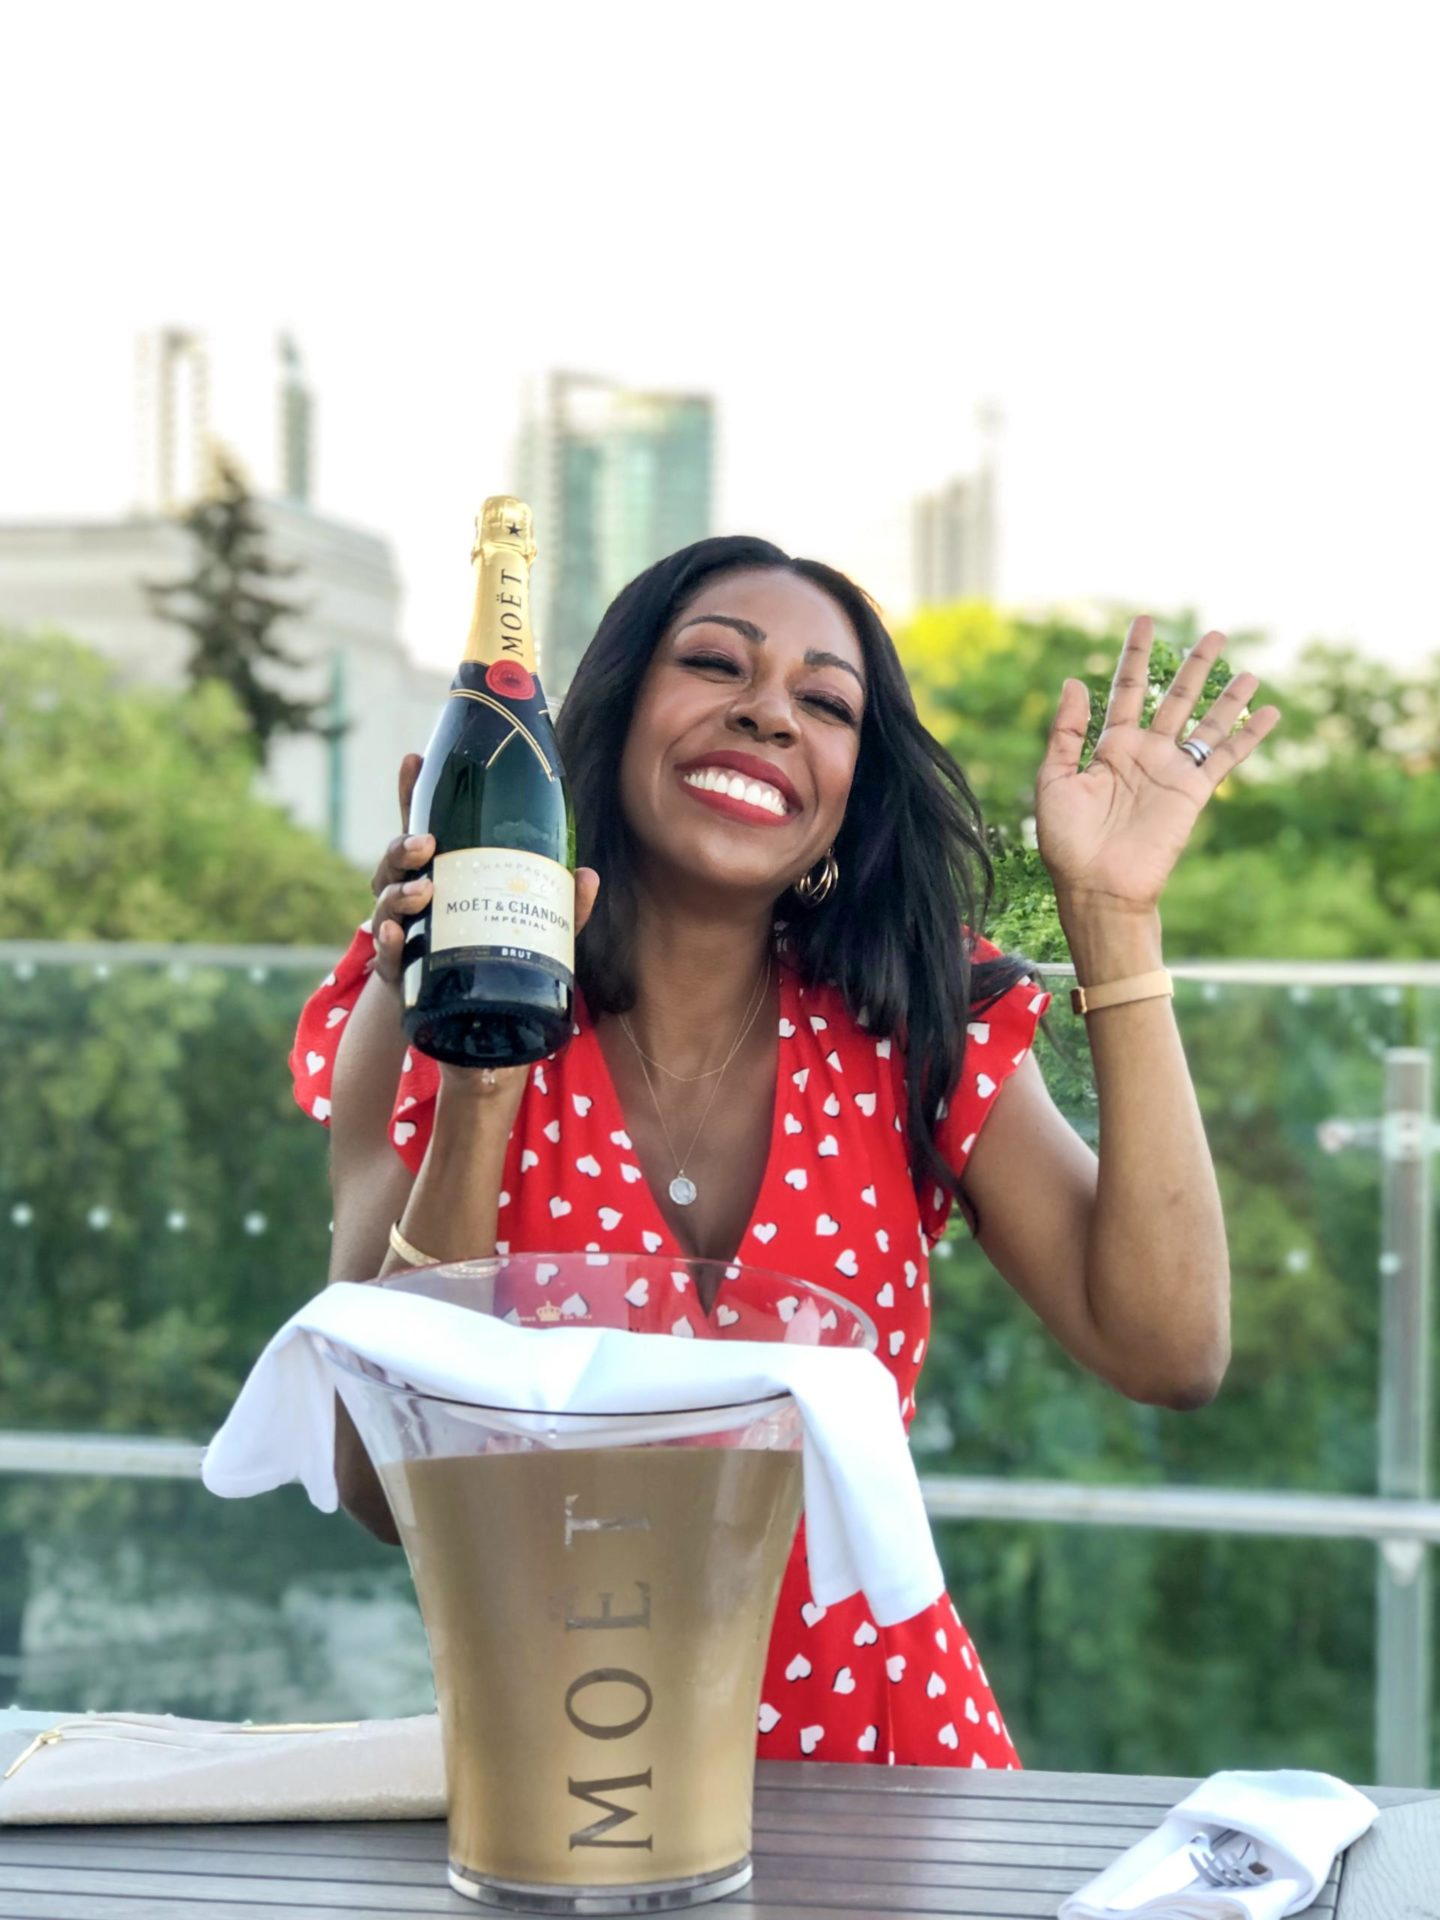 Dominique Baker holding a bottle of Moët & Chandon Champagne